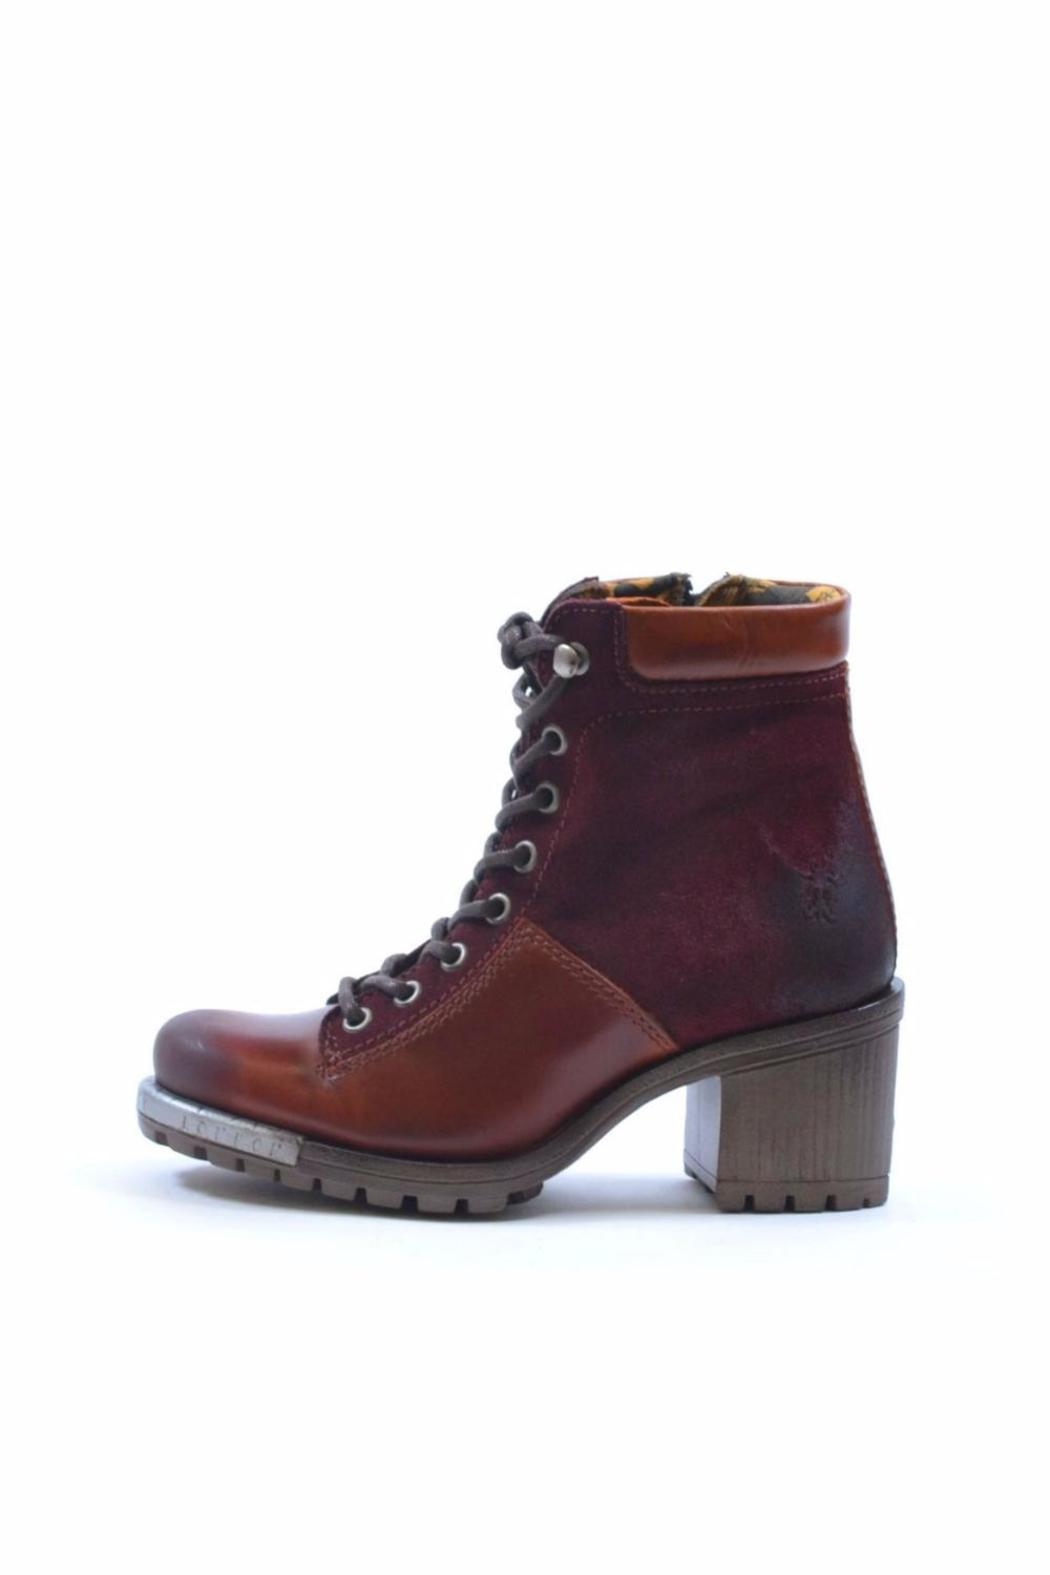 Fly London Leal Boot from Canada by